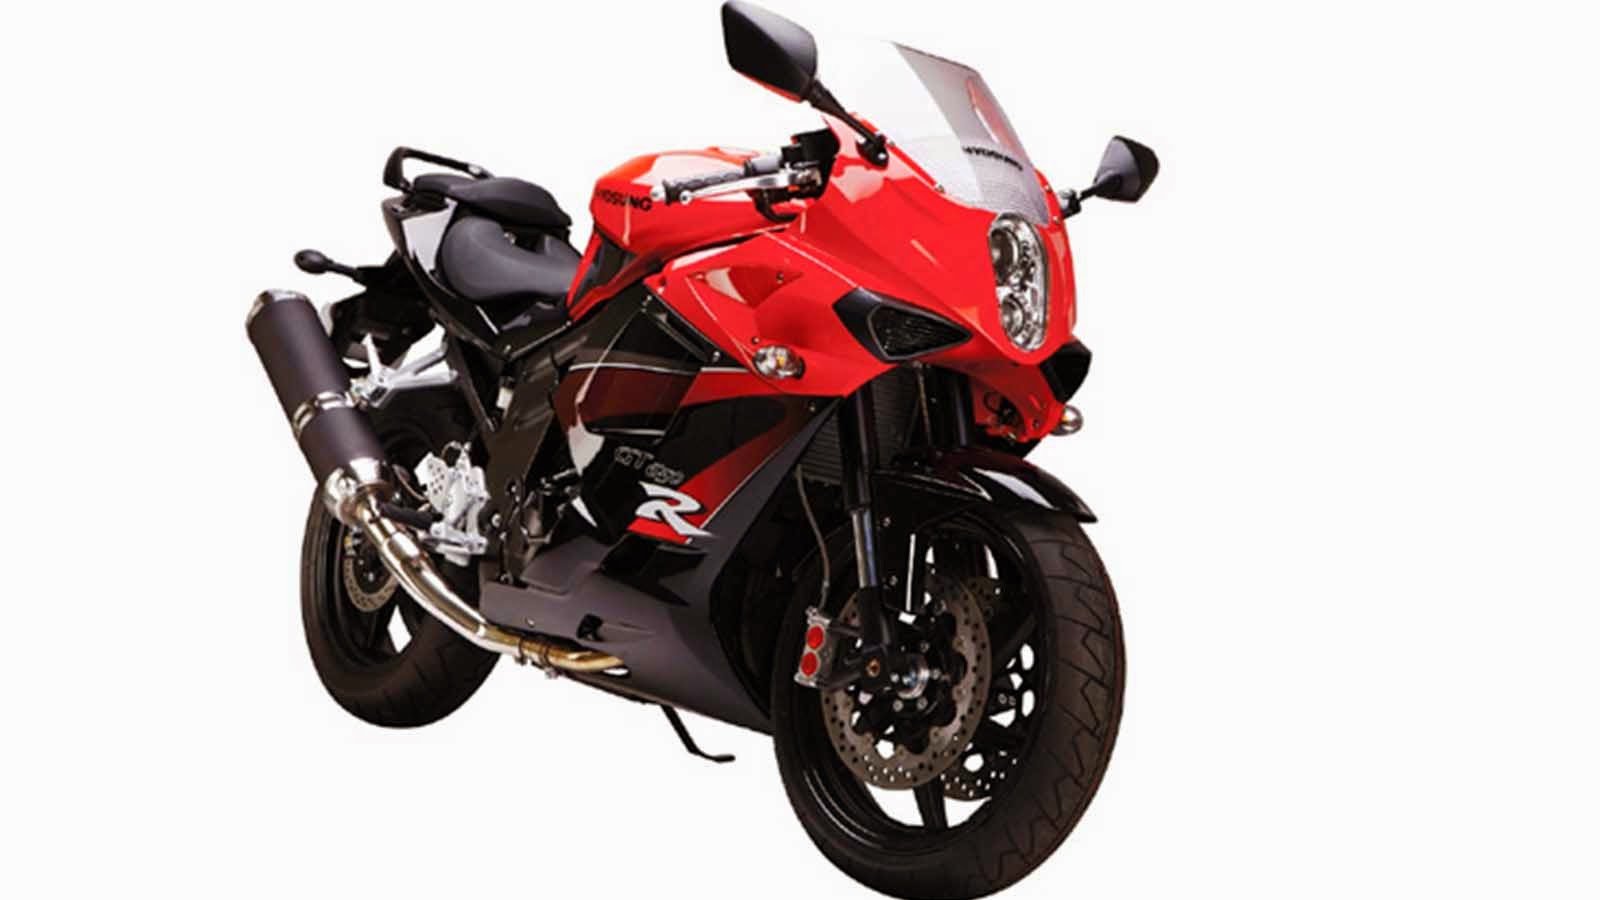 Update Car Motorcycle Hyosung Gt250r Price India And Fetures